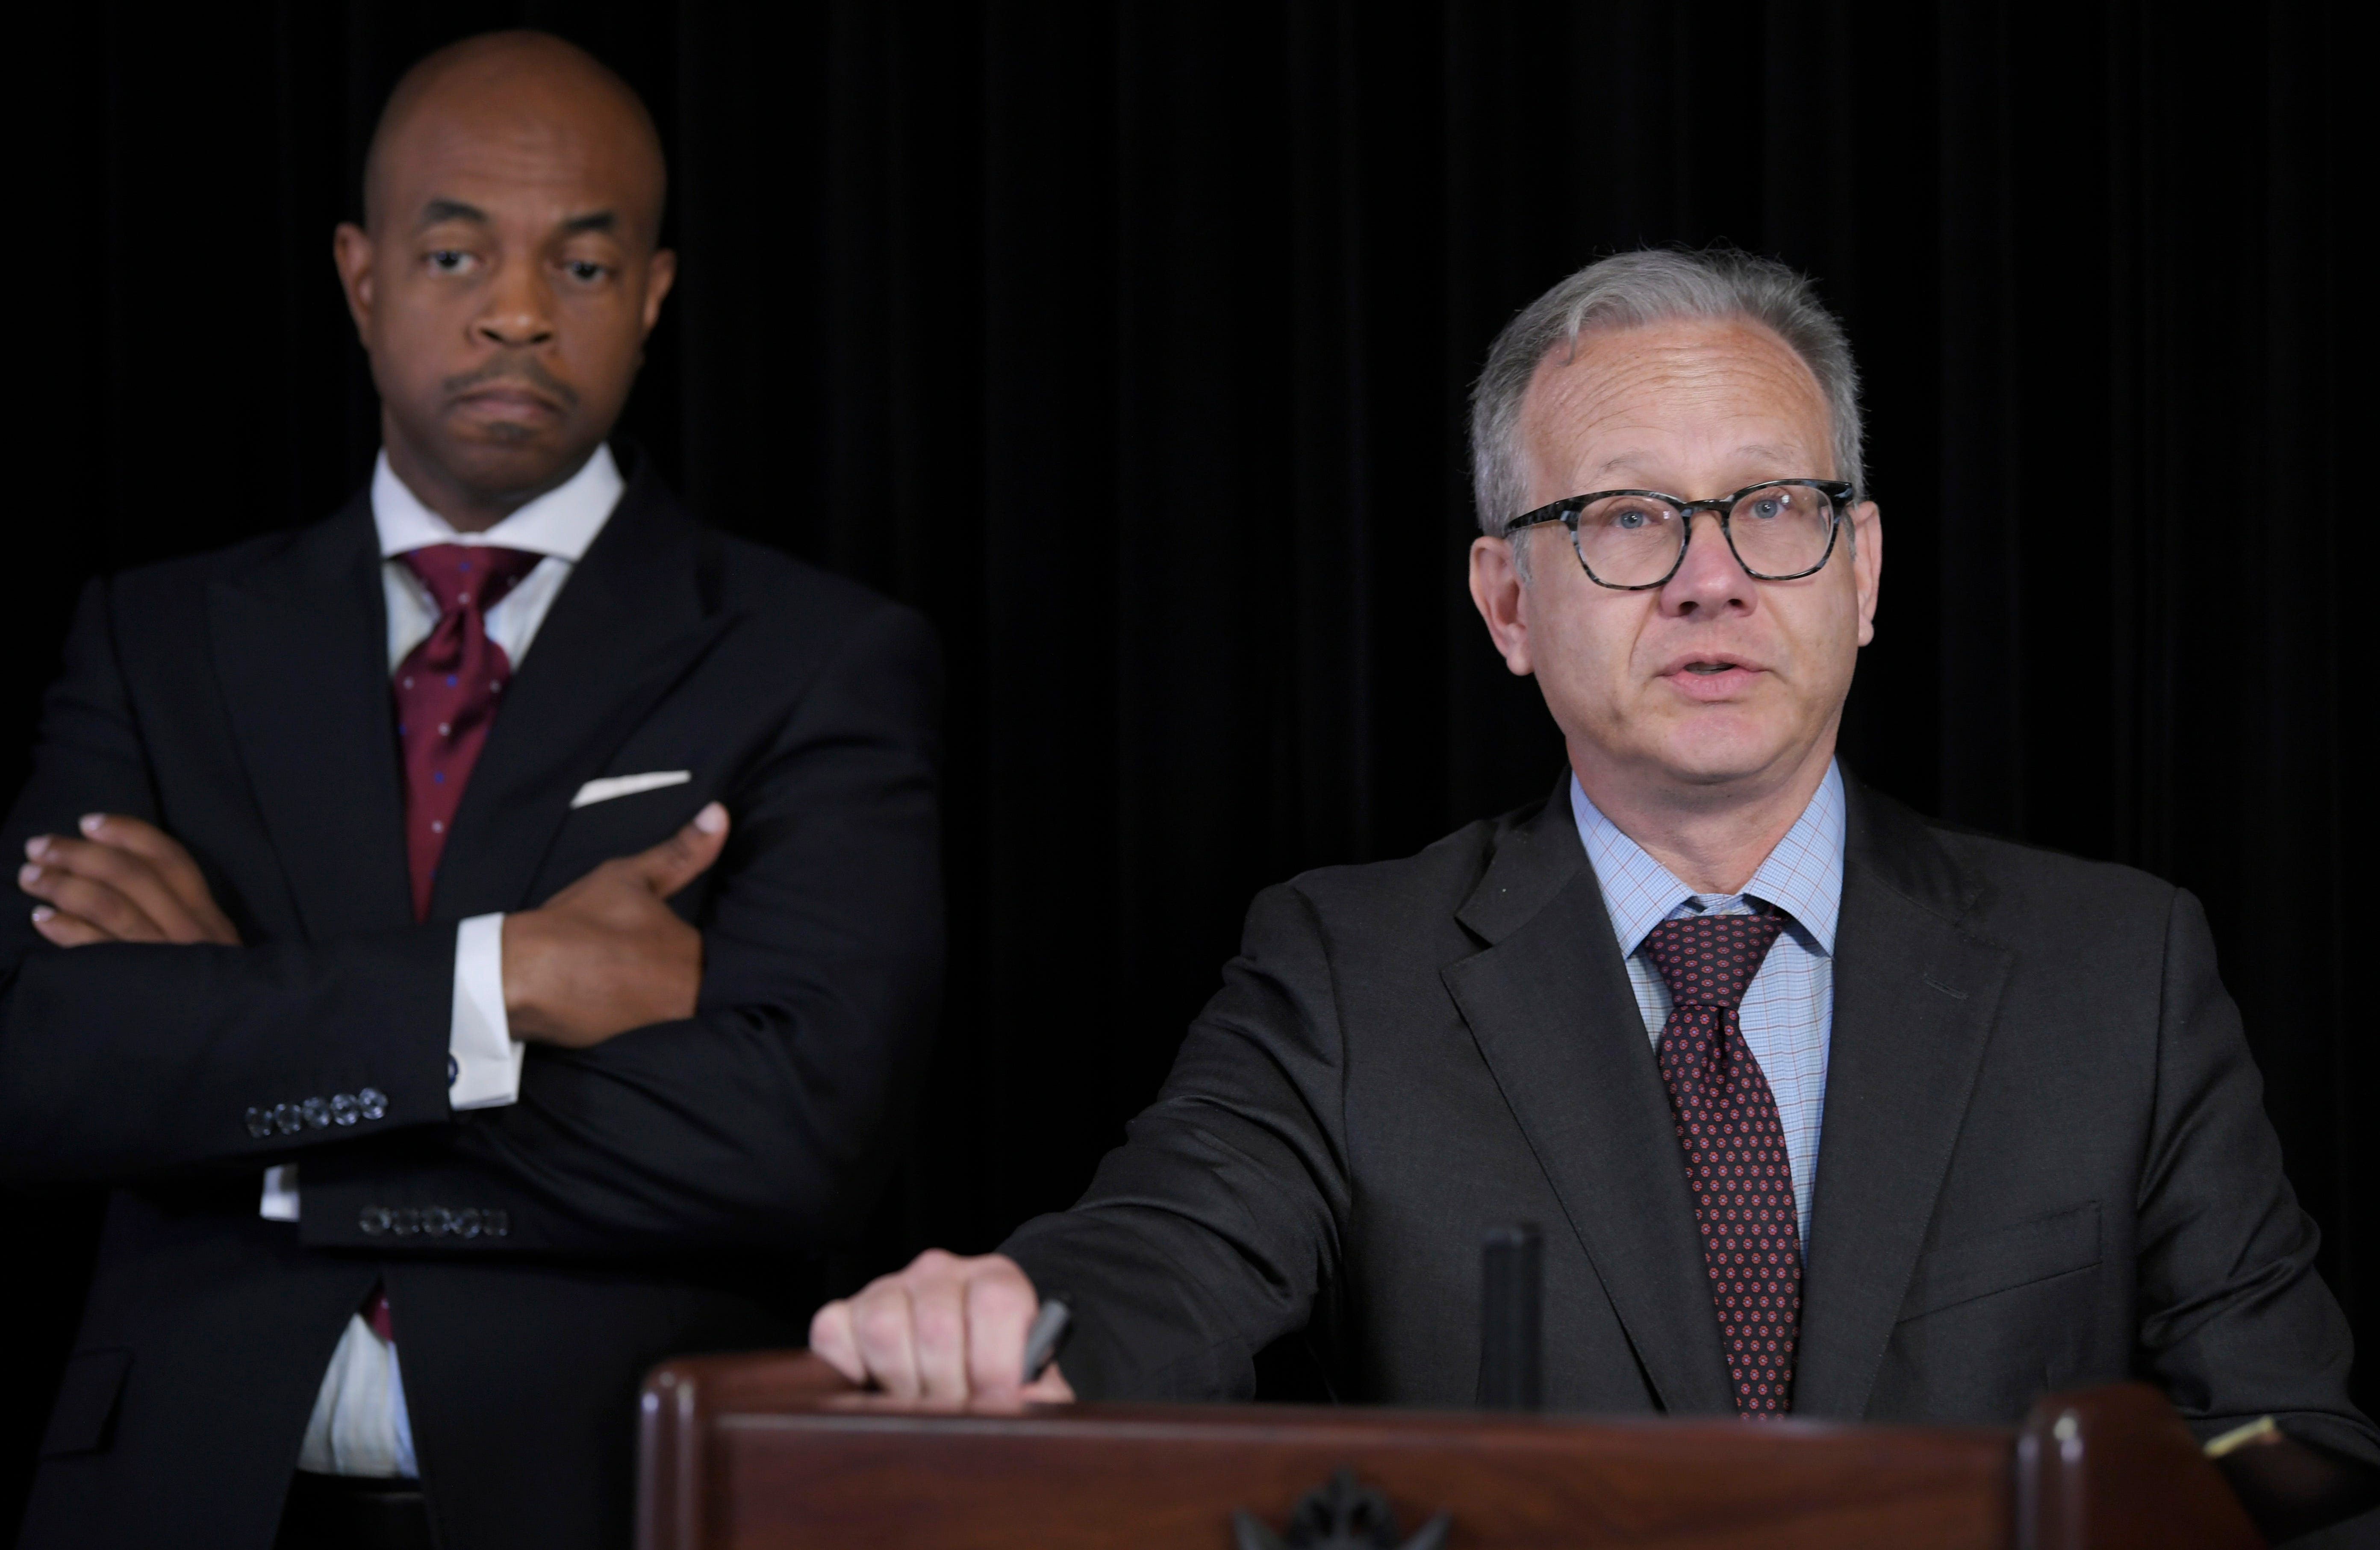 Mayor Briley calls for 'comprehensive review' of policing practices